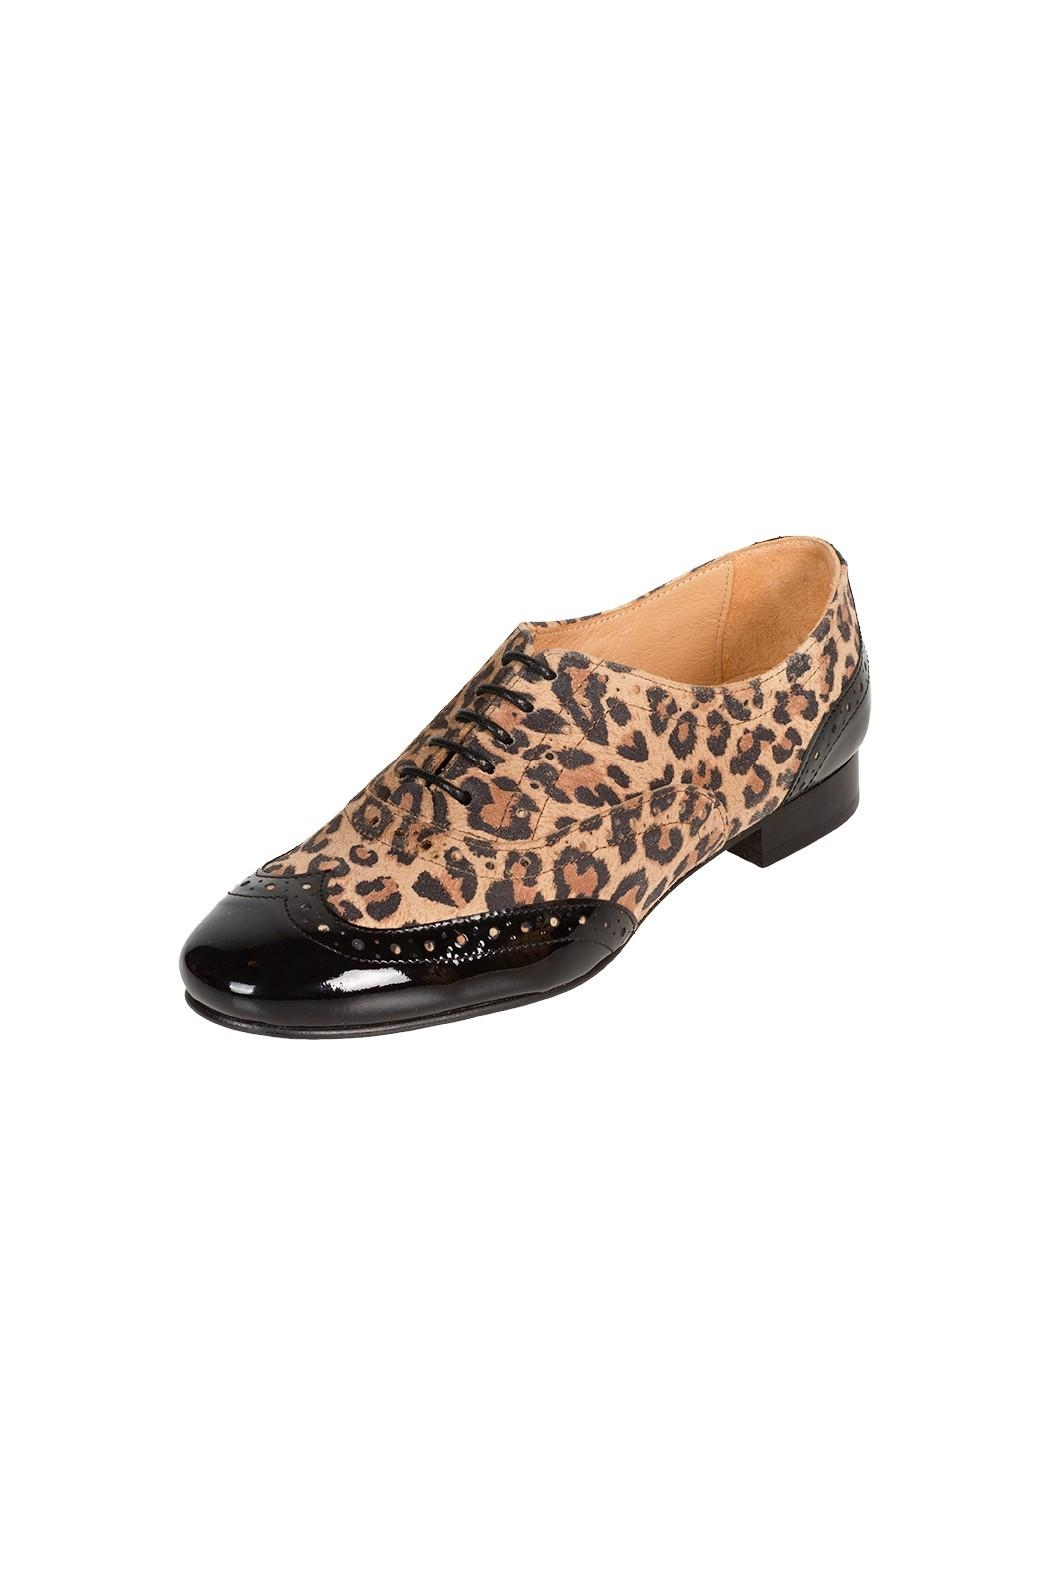 Pascucci Leopard Leather Brogue - Front Full Image